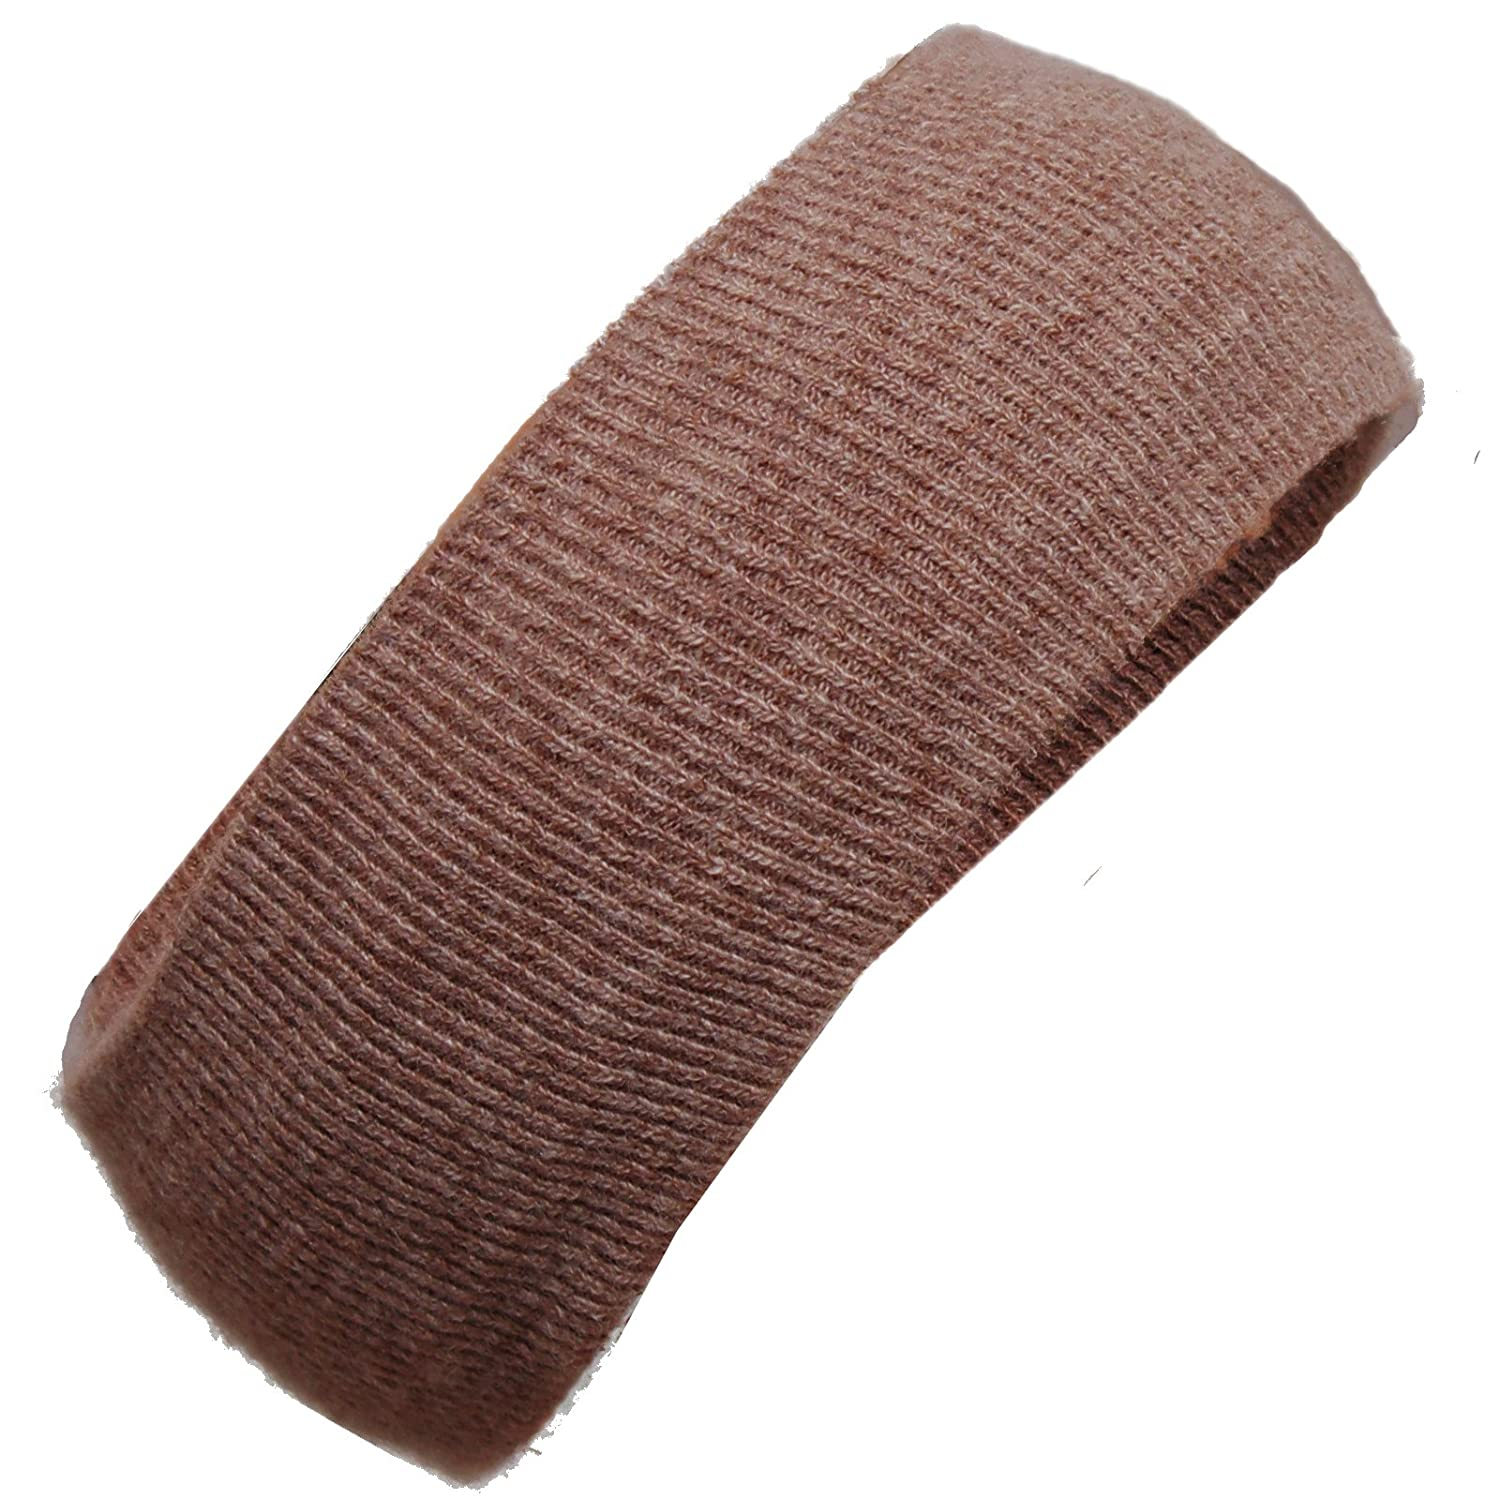 BRUBAKER Mens Or Womans Knit Headband Lambswool / Angora Headband_USA_Brown